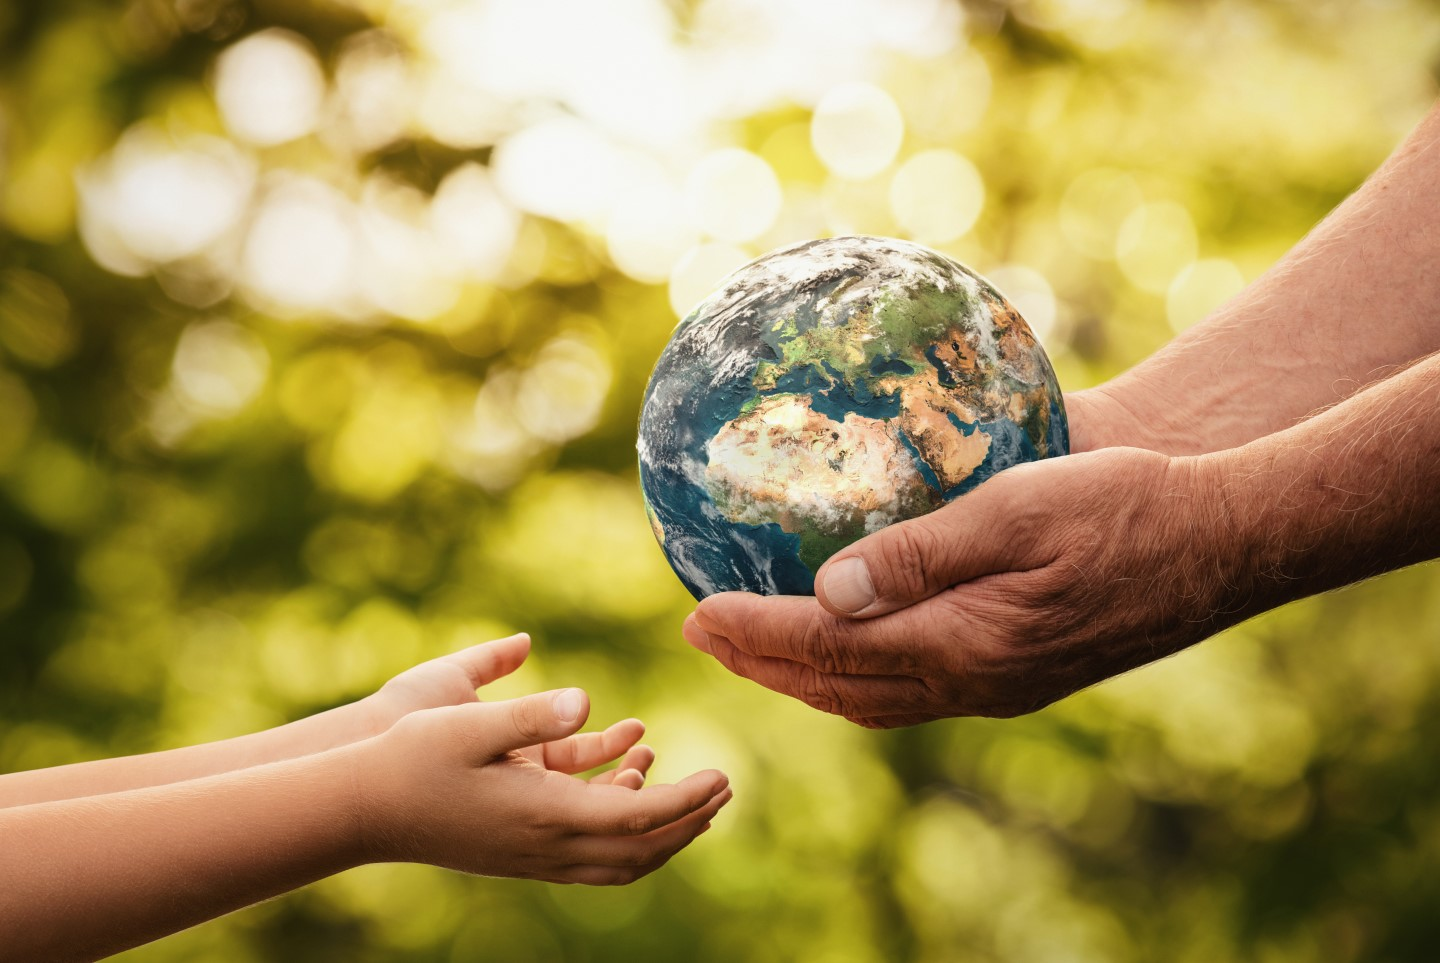 holding the earth stock image